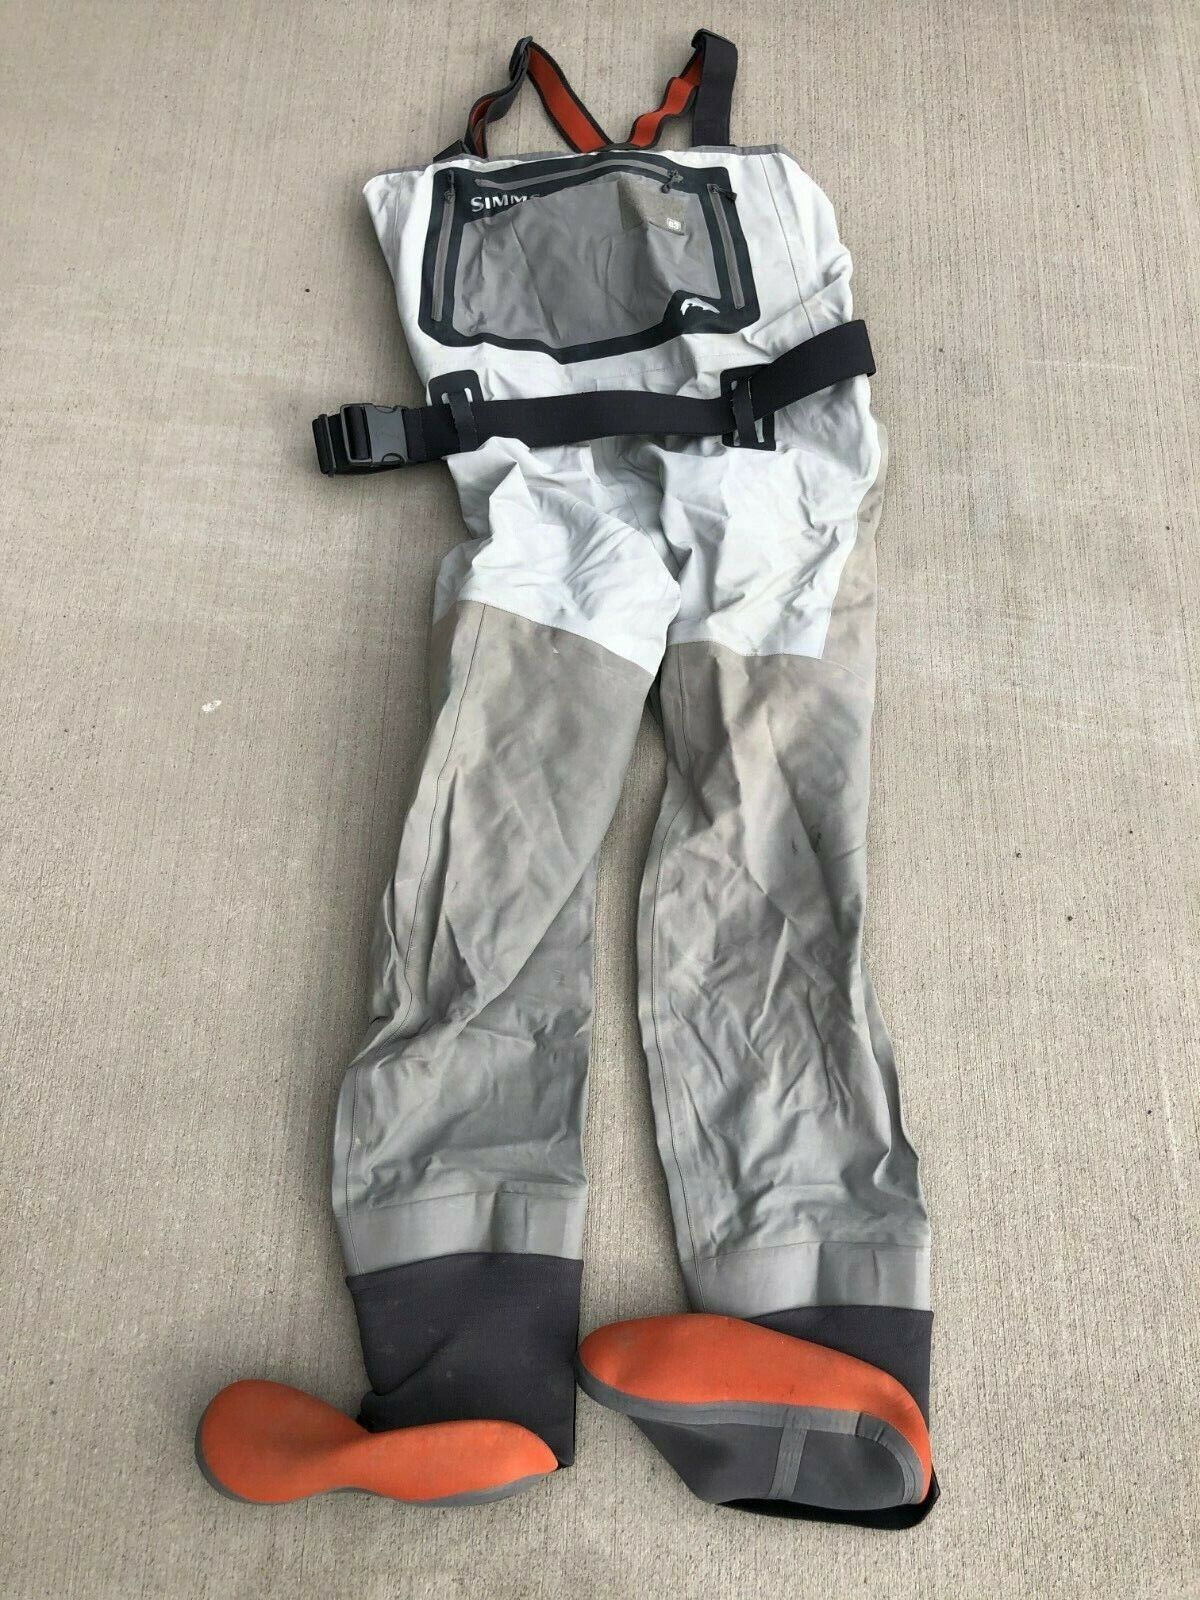 SIMMS G3 Stocrefoot Waders  grigiostone  Diuominiione gree  USED 2019O